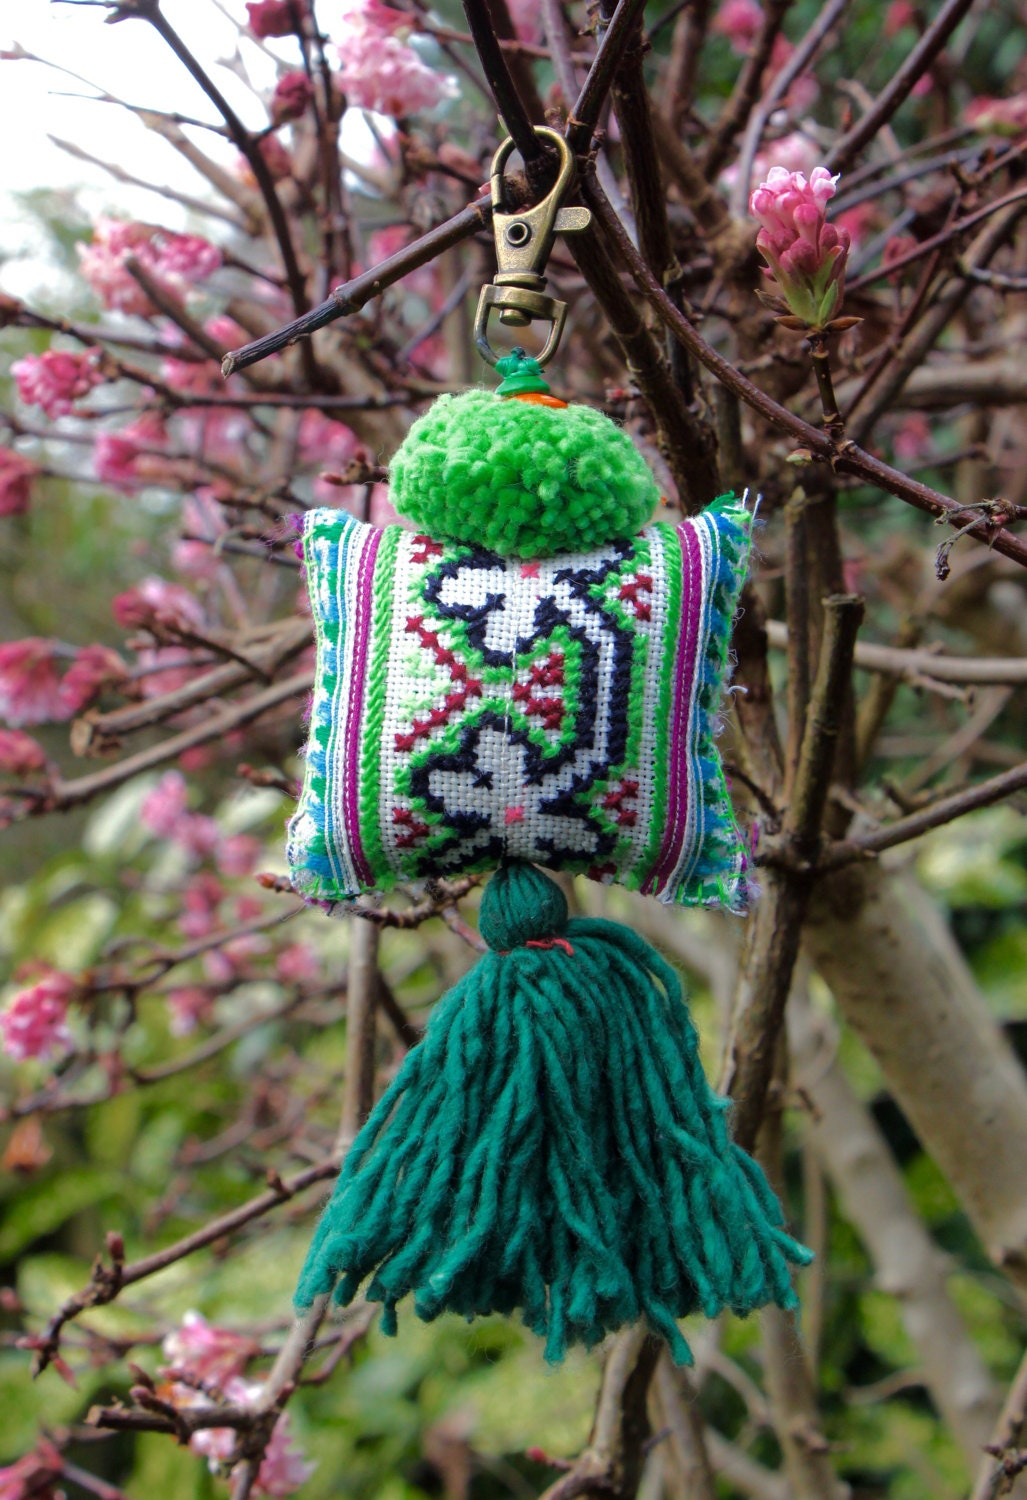 Handmade keychain bag charm Hmong textile bag accessory colourful keychain ethnic keychain ethnic accessories handmade gift